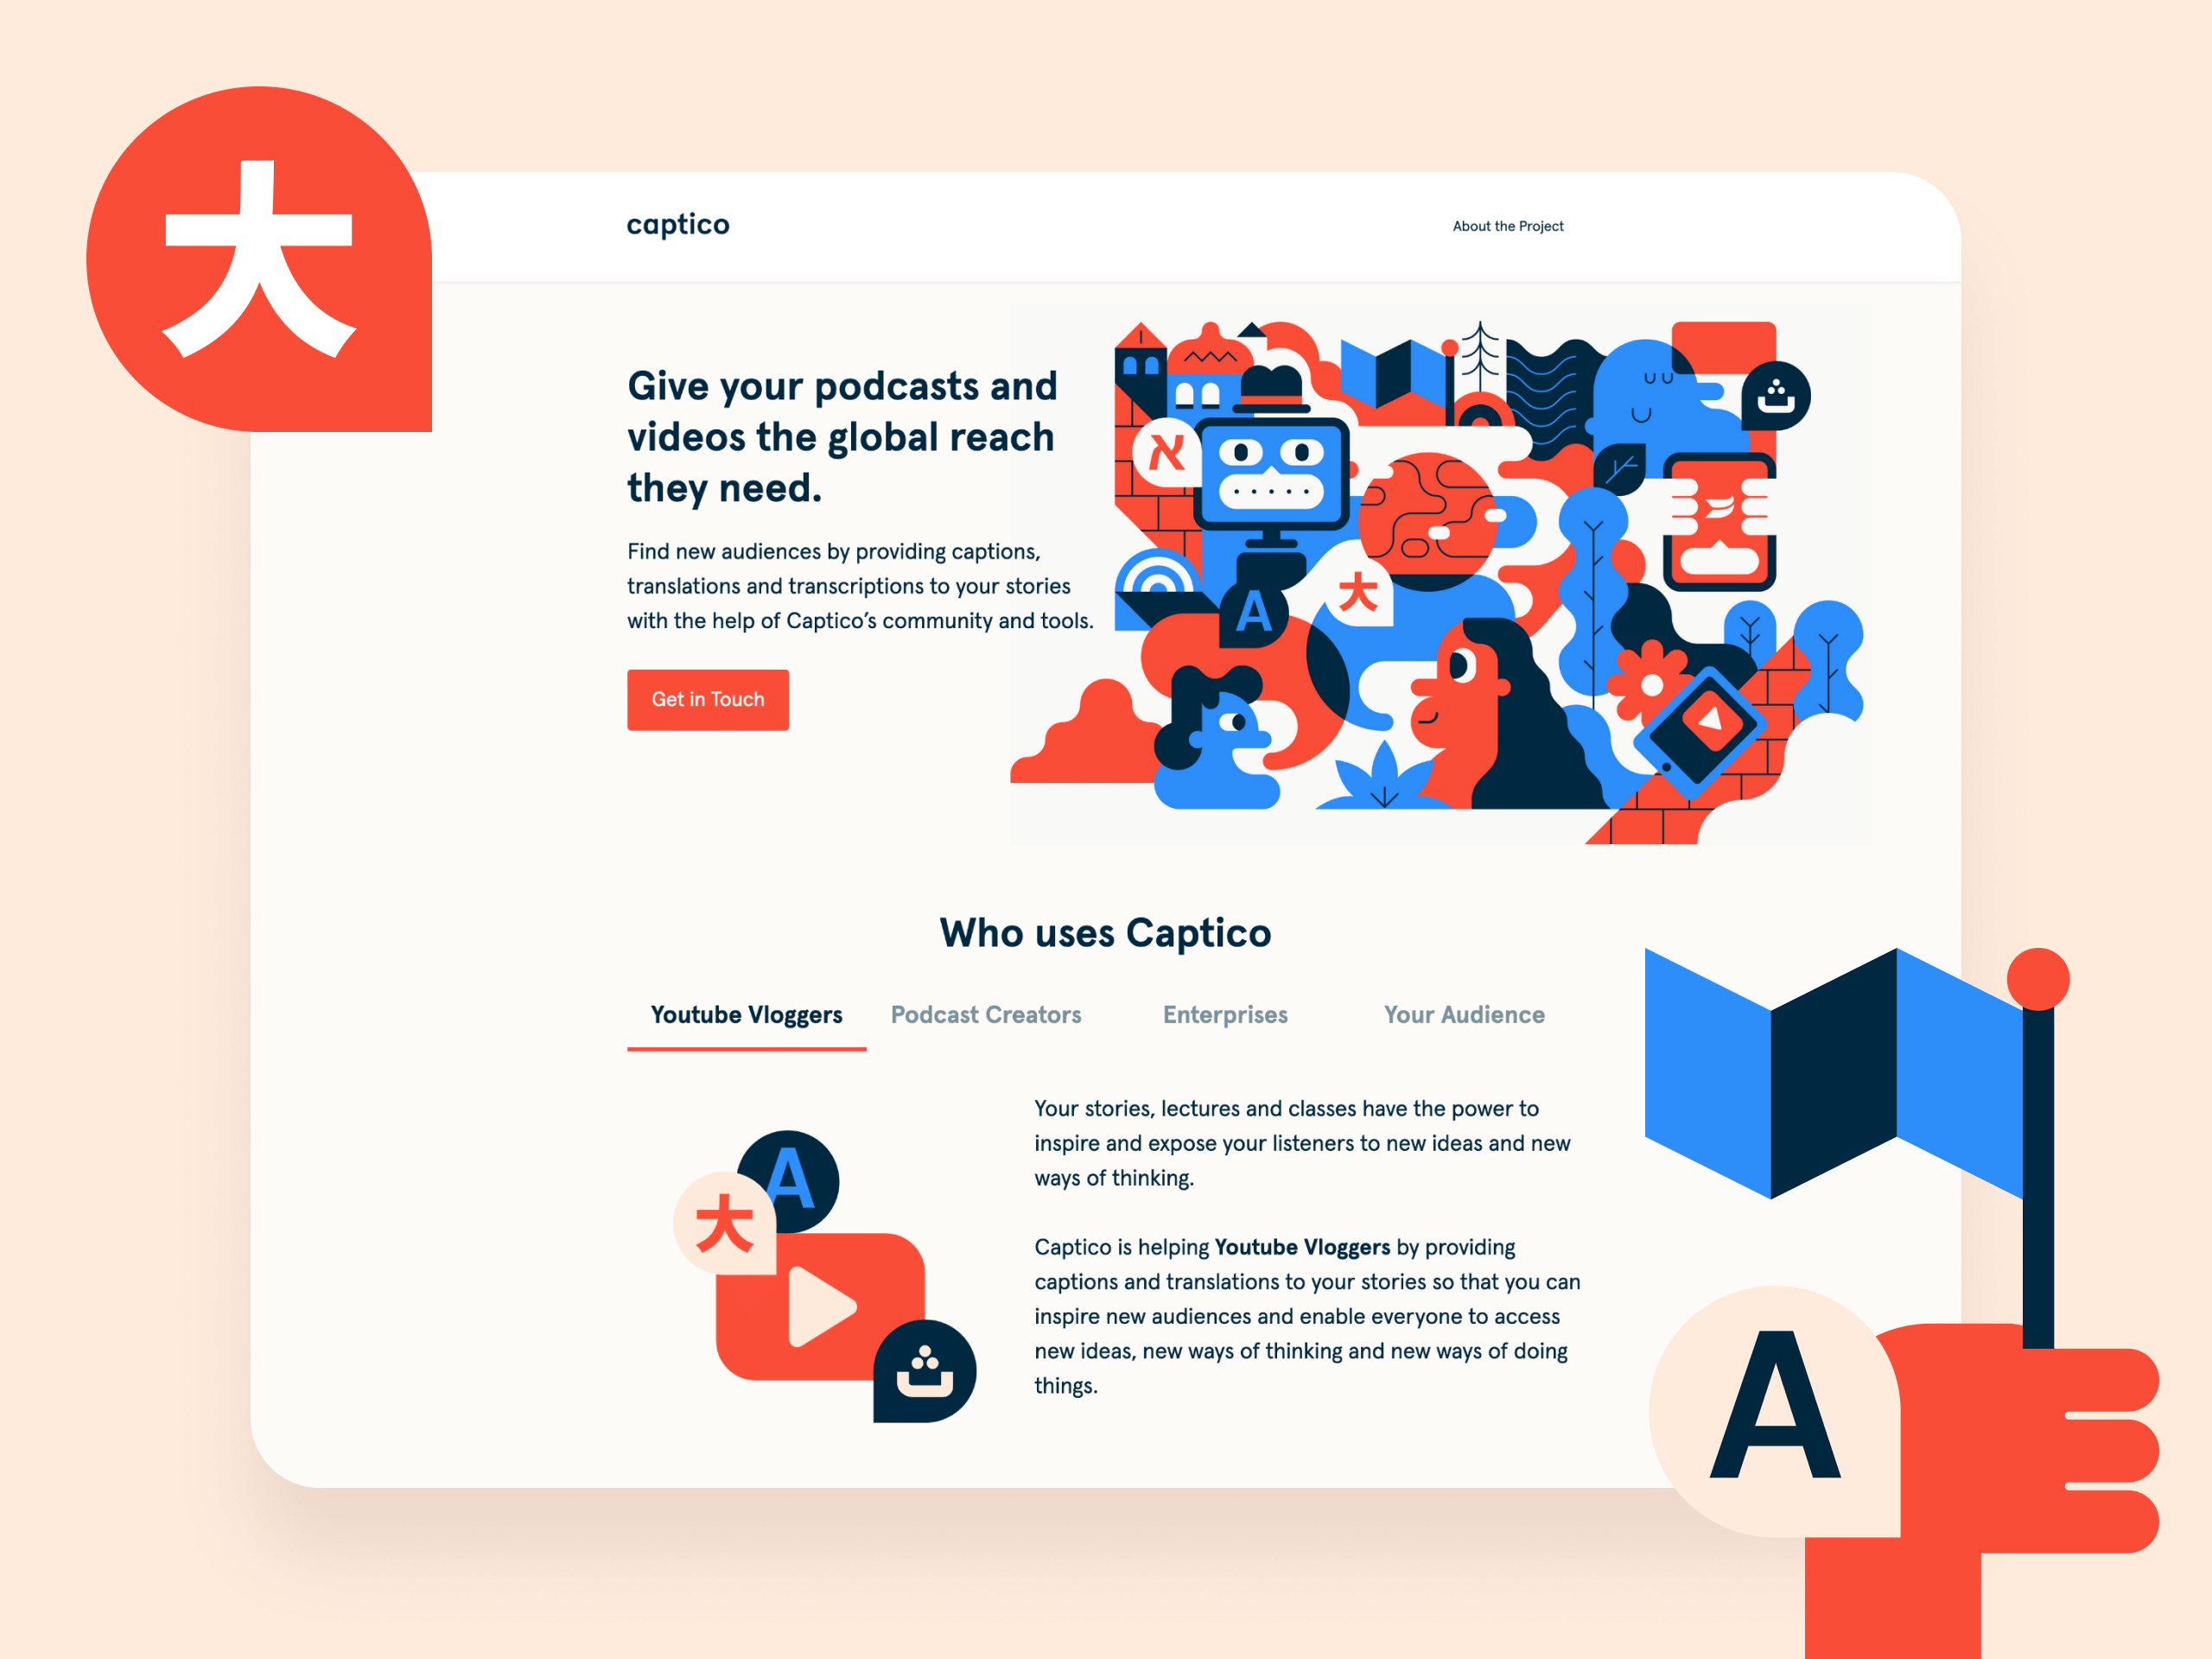 Landing page user interface for Captico's website.